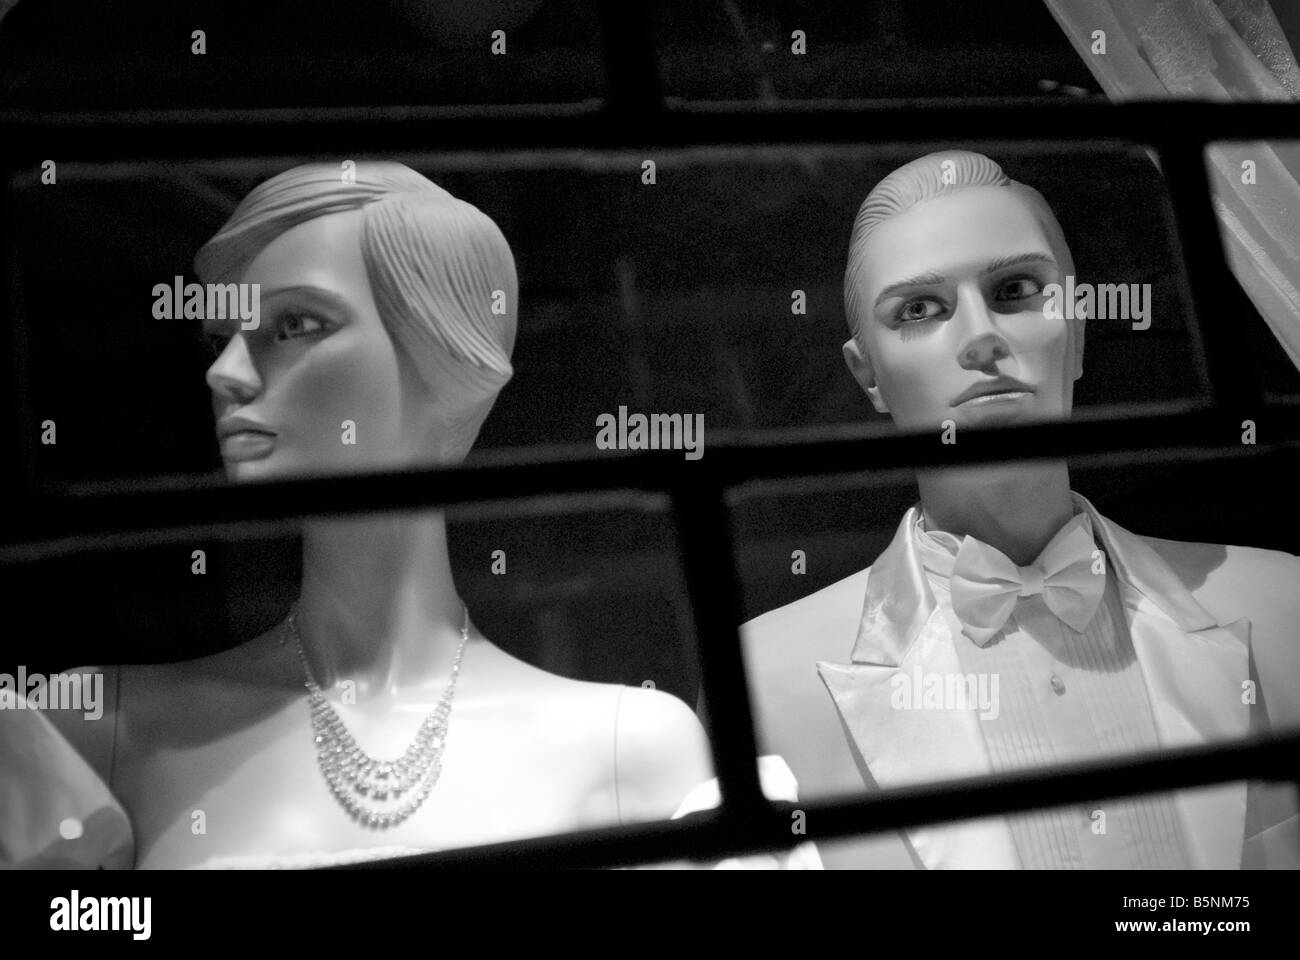 Dummies behind rolling shutter - Stock Image